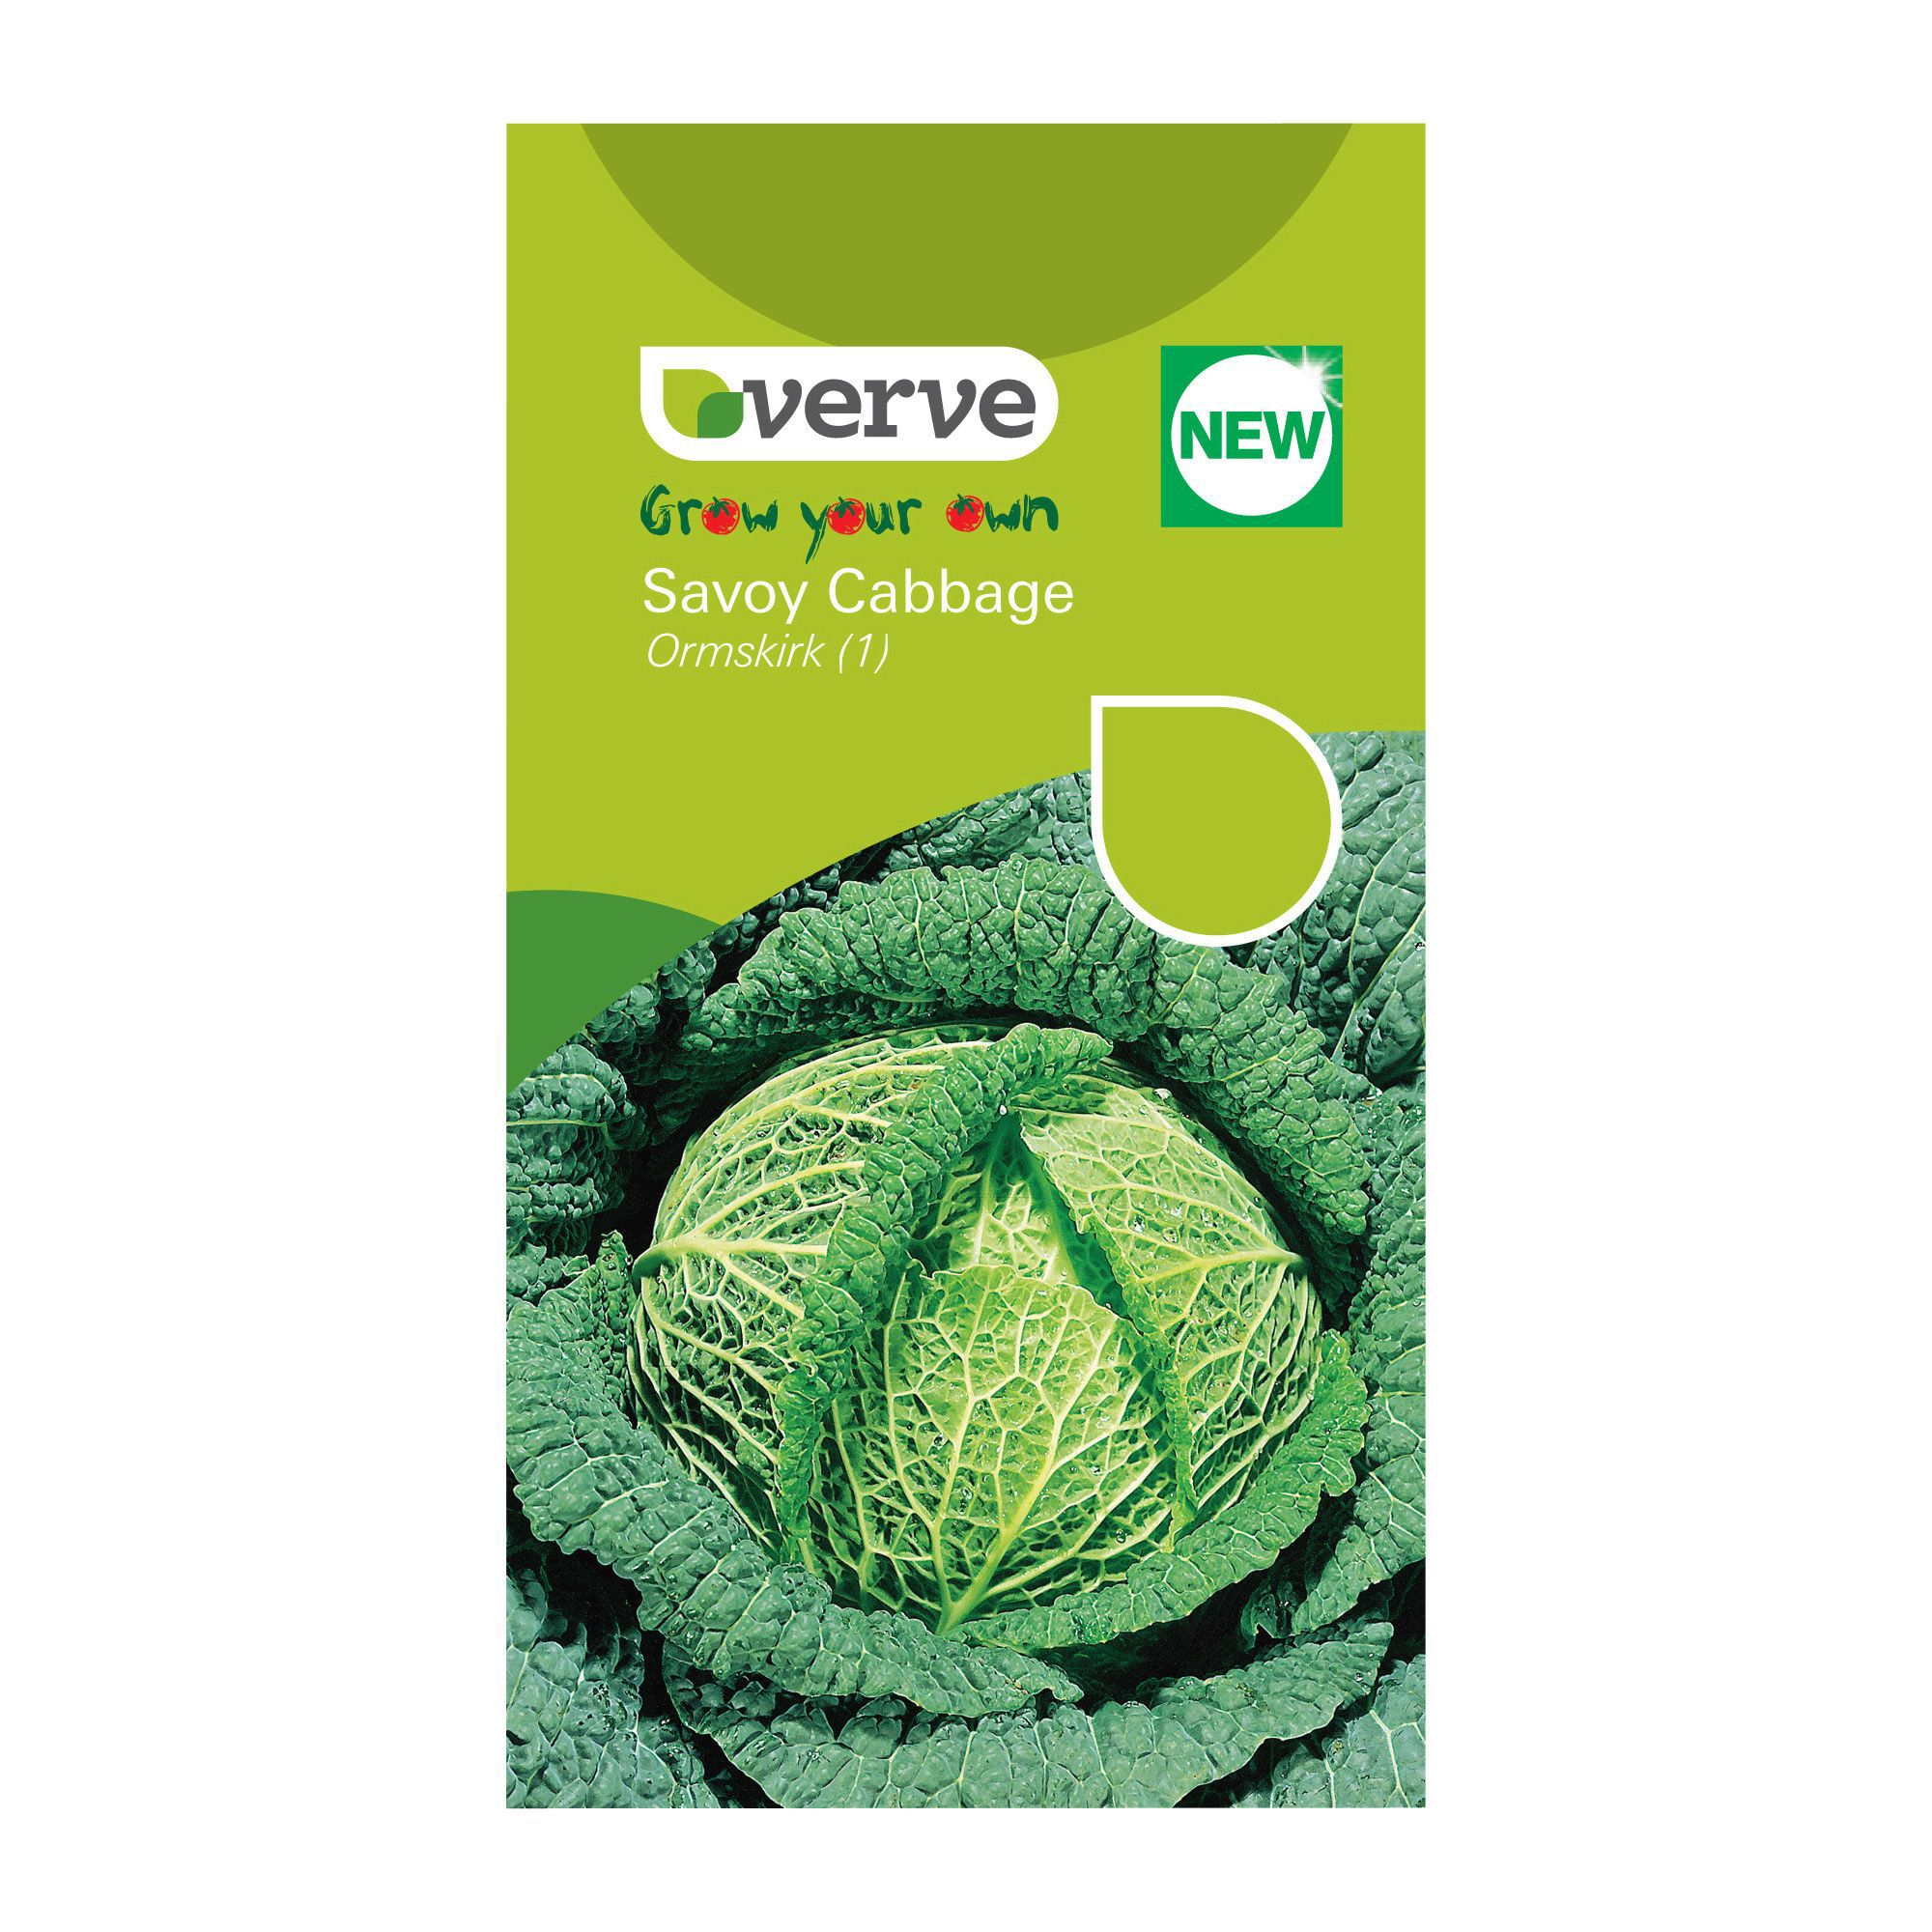 Verve Savoy Cabbage Seeds Ormskirk 1 Rearguard Mix